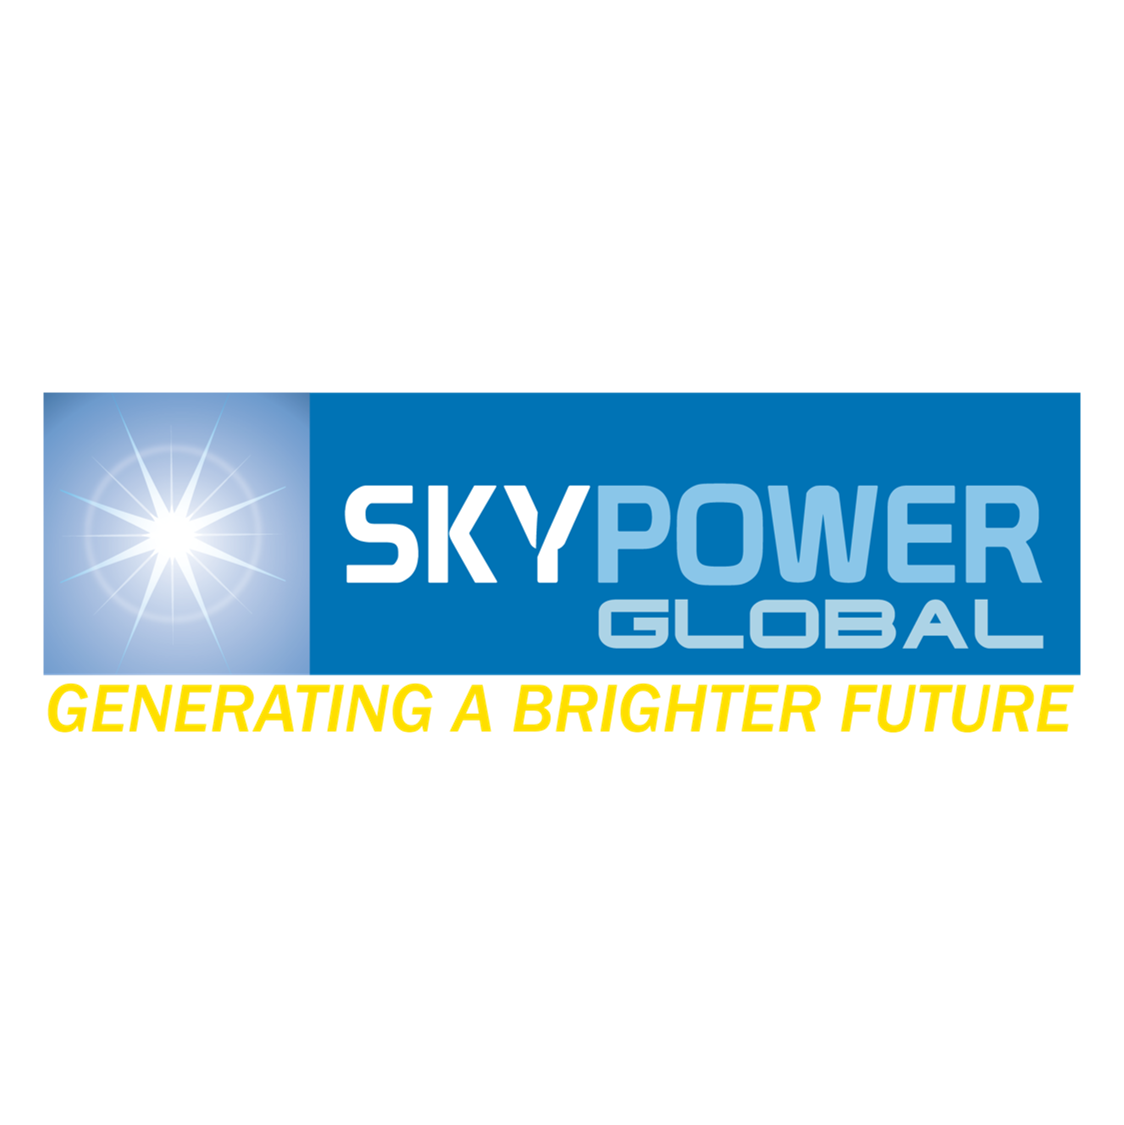 SkyPower Global